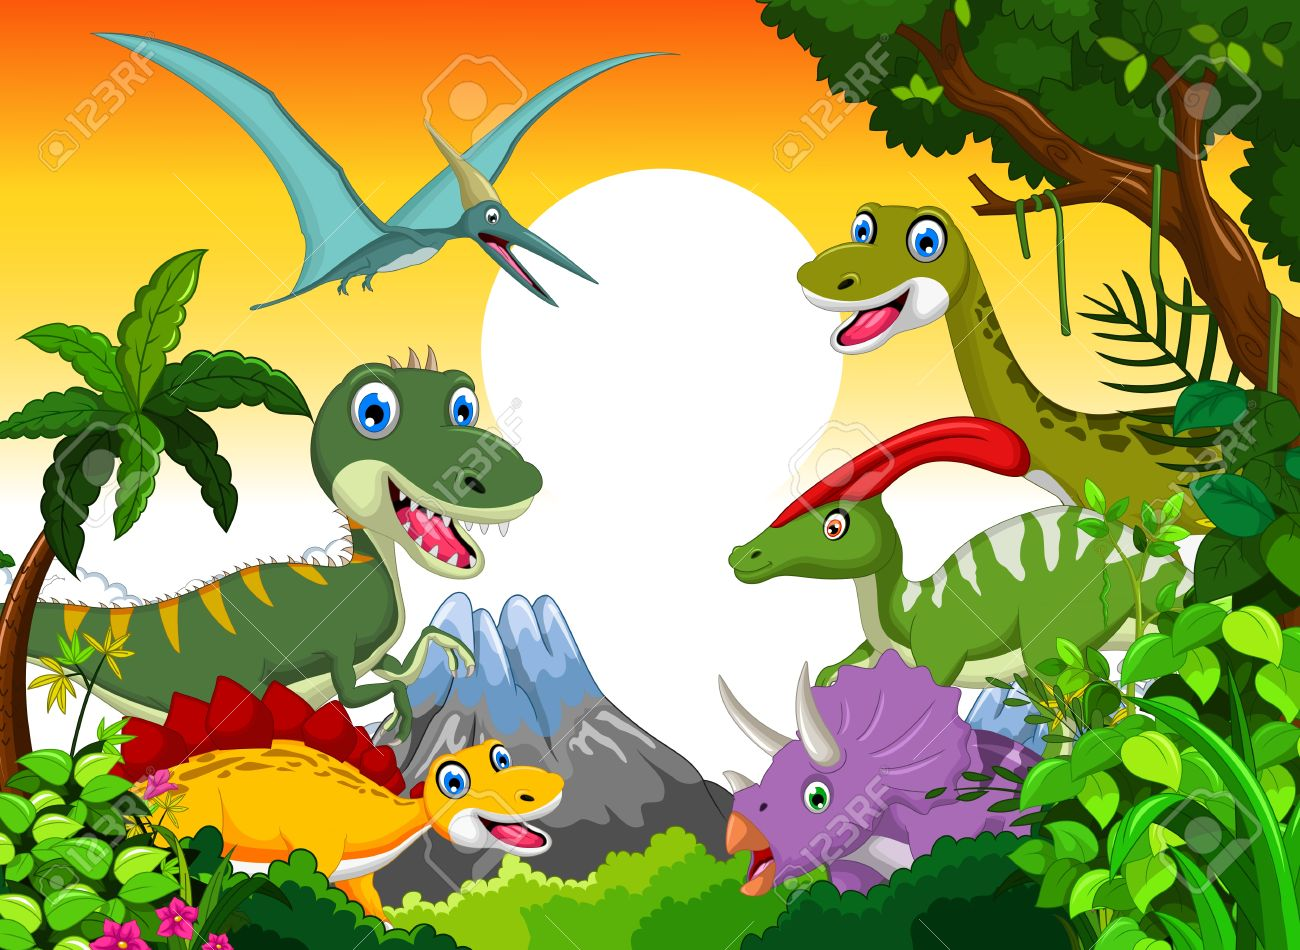 Dinosaur cartoon with landscape background for your design - 44558835